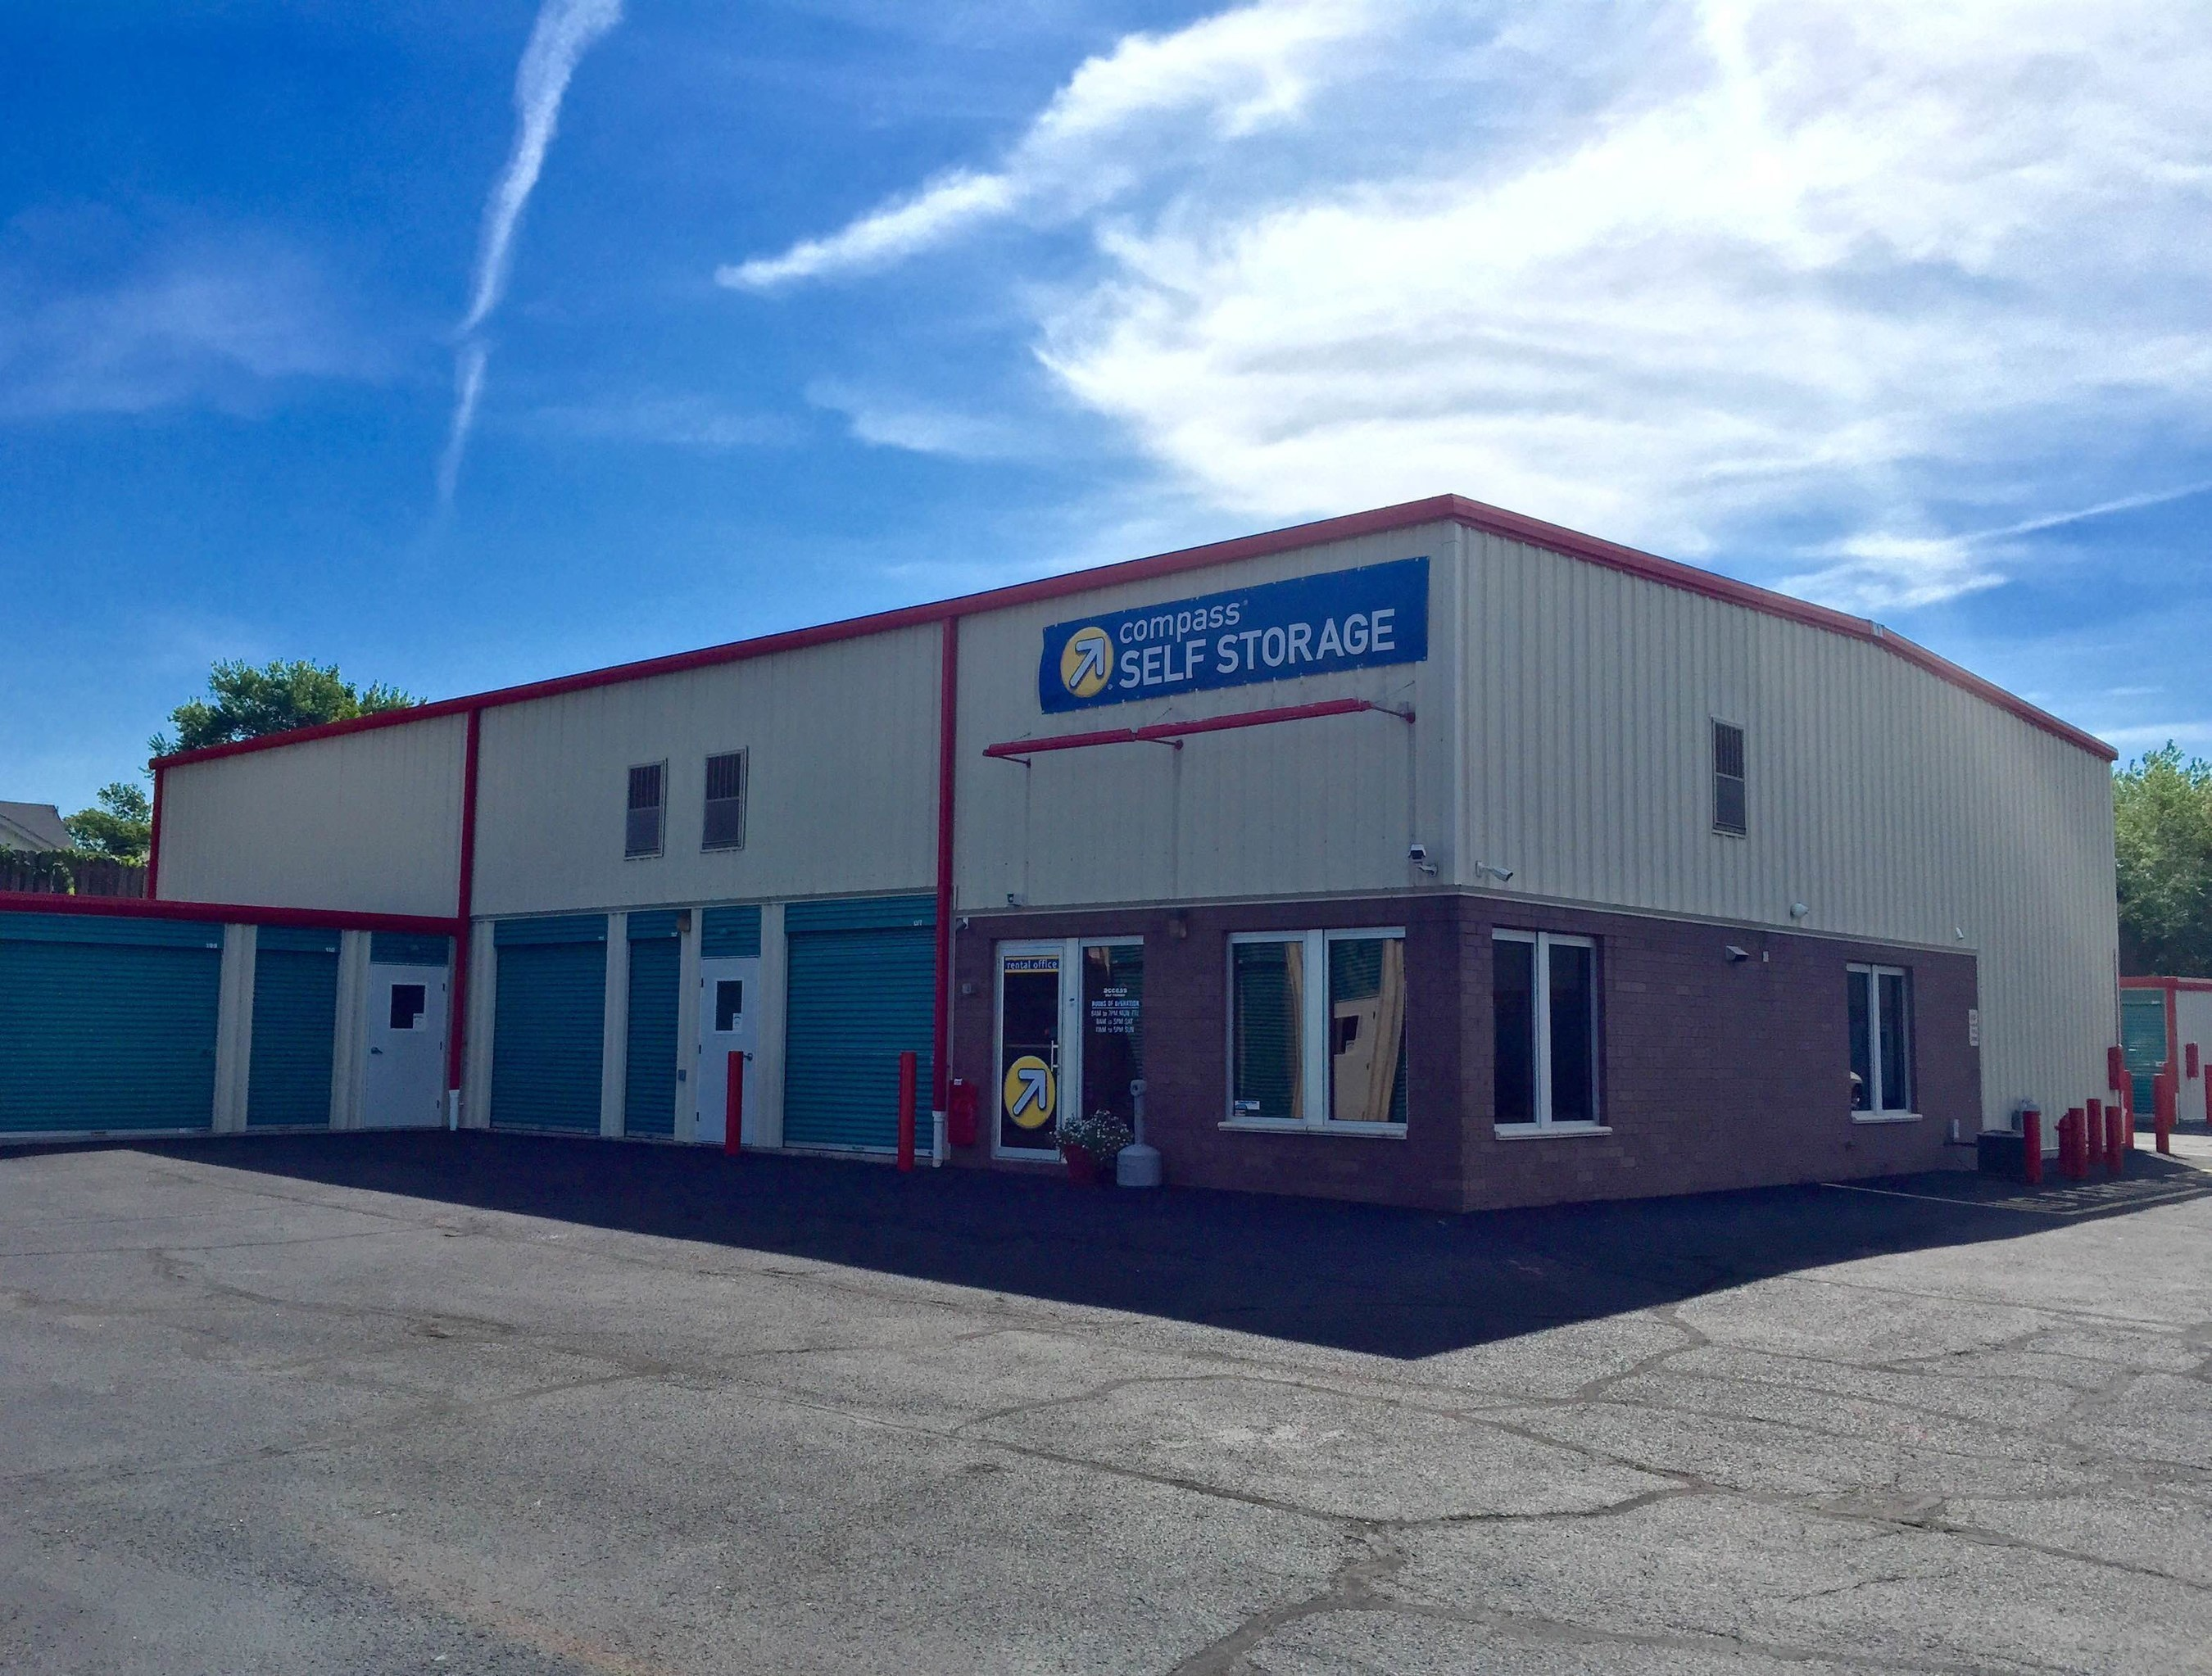 Compass Self Storage acquired this superior quality self storage center in Manville, NJ